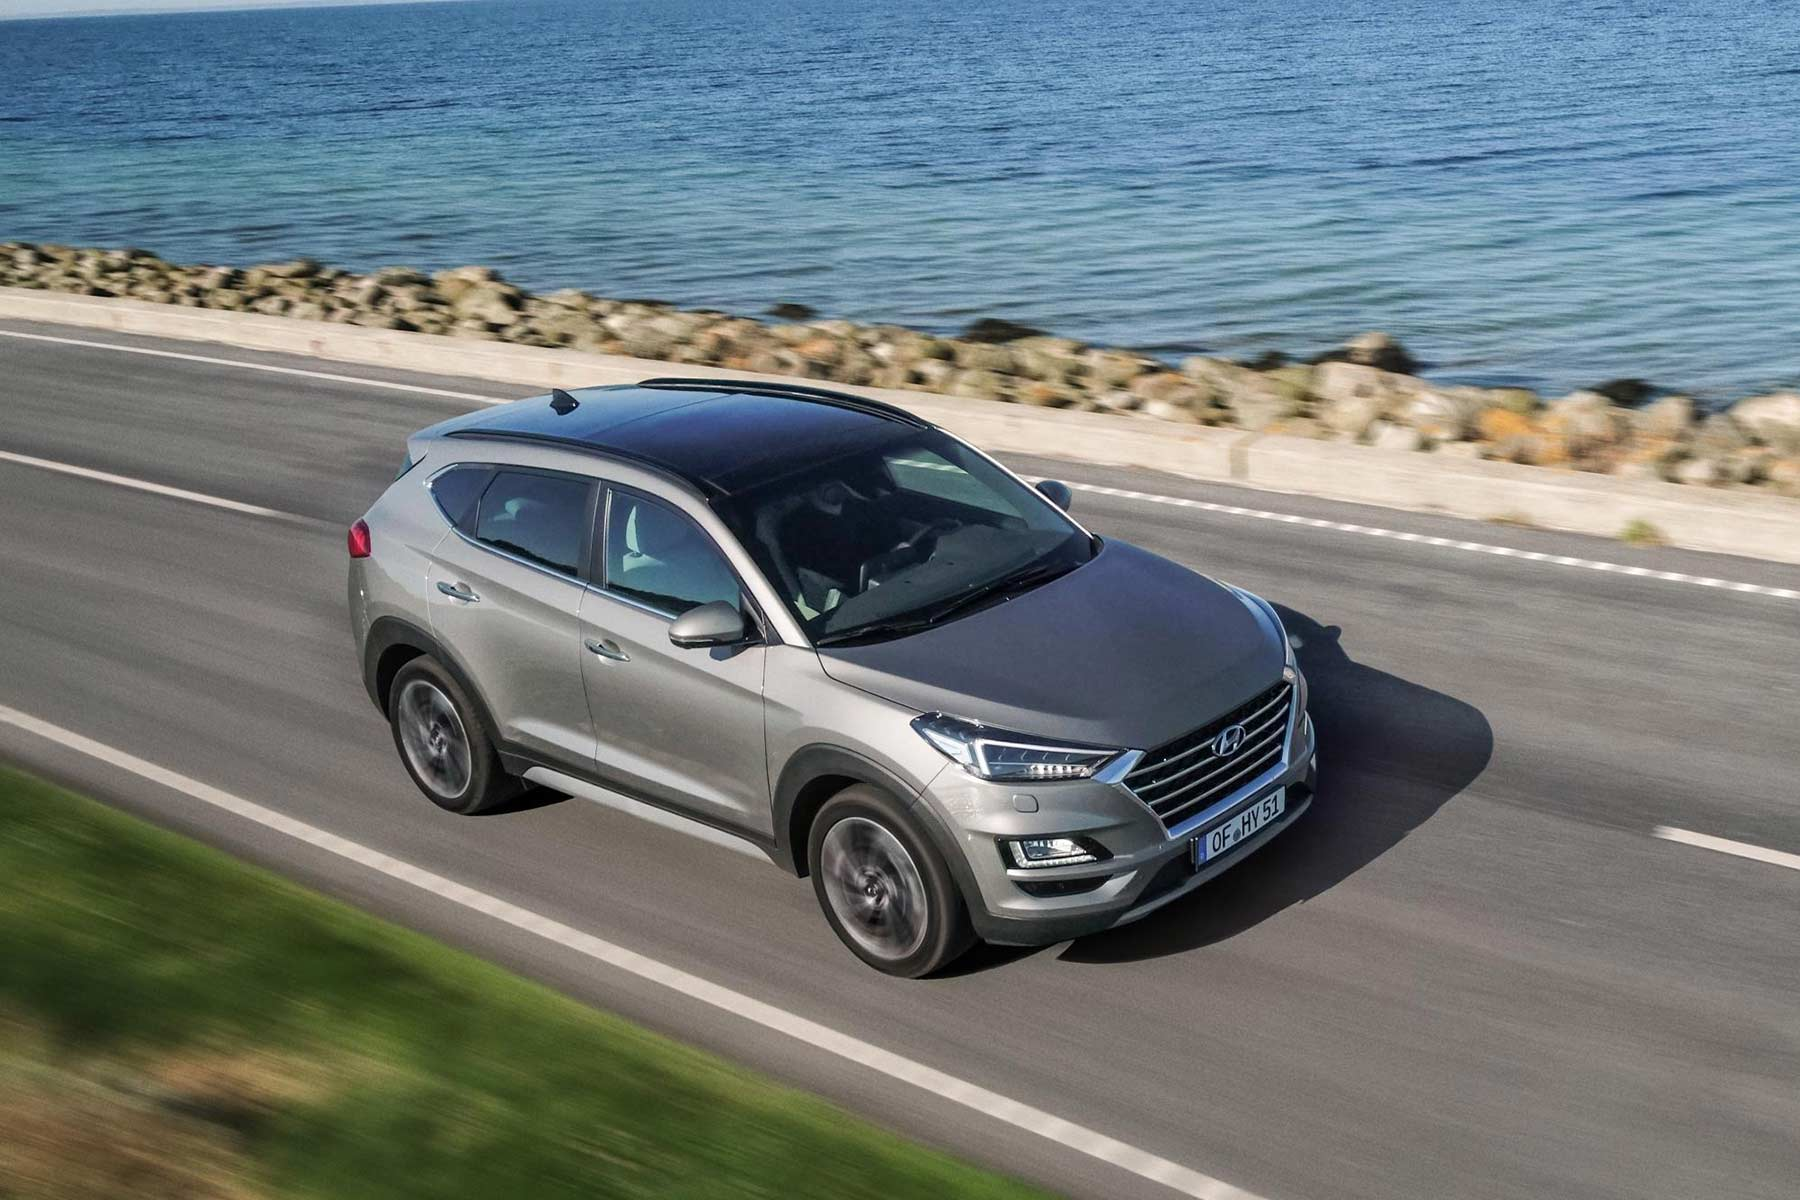 hyundai confirms new 2018 tucson suv will gain diesel hybrid power motoring research. Black Bedroom Furniture Sets. Home Design Ideas